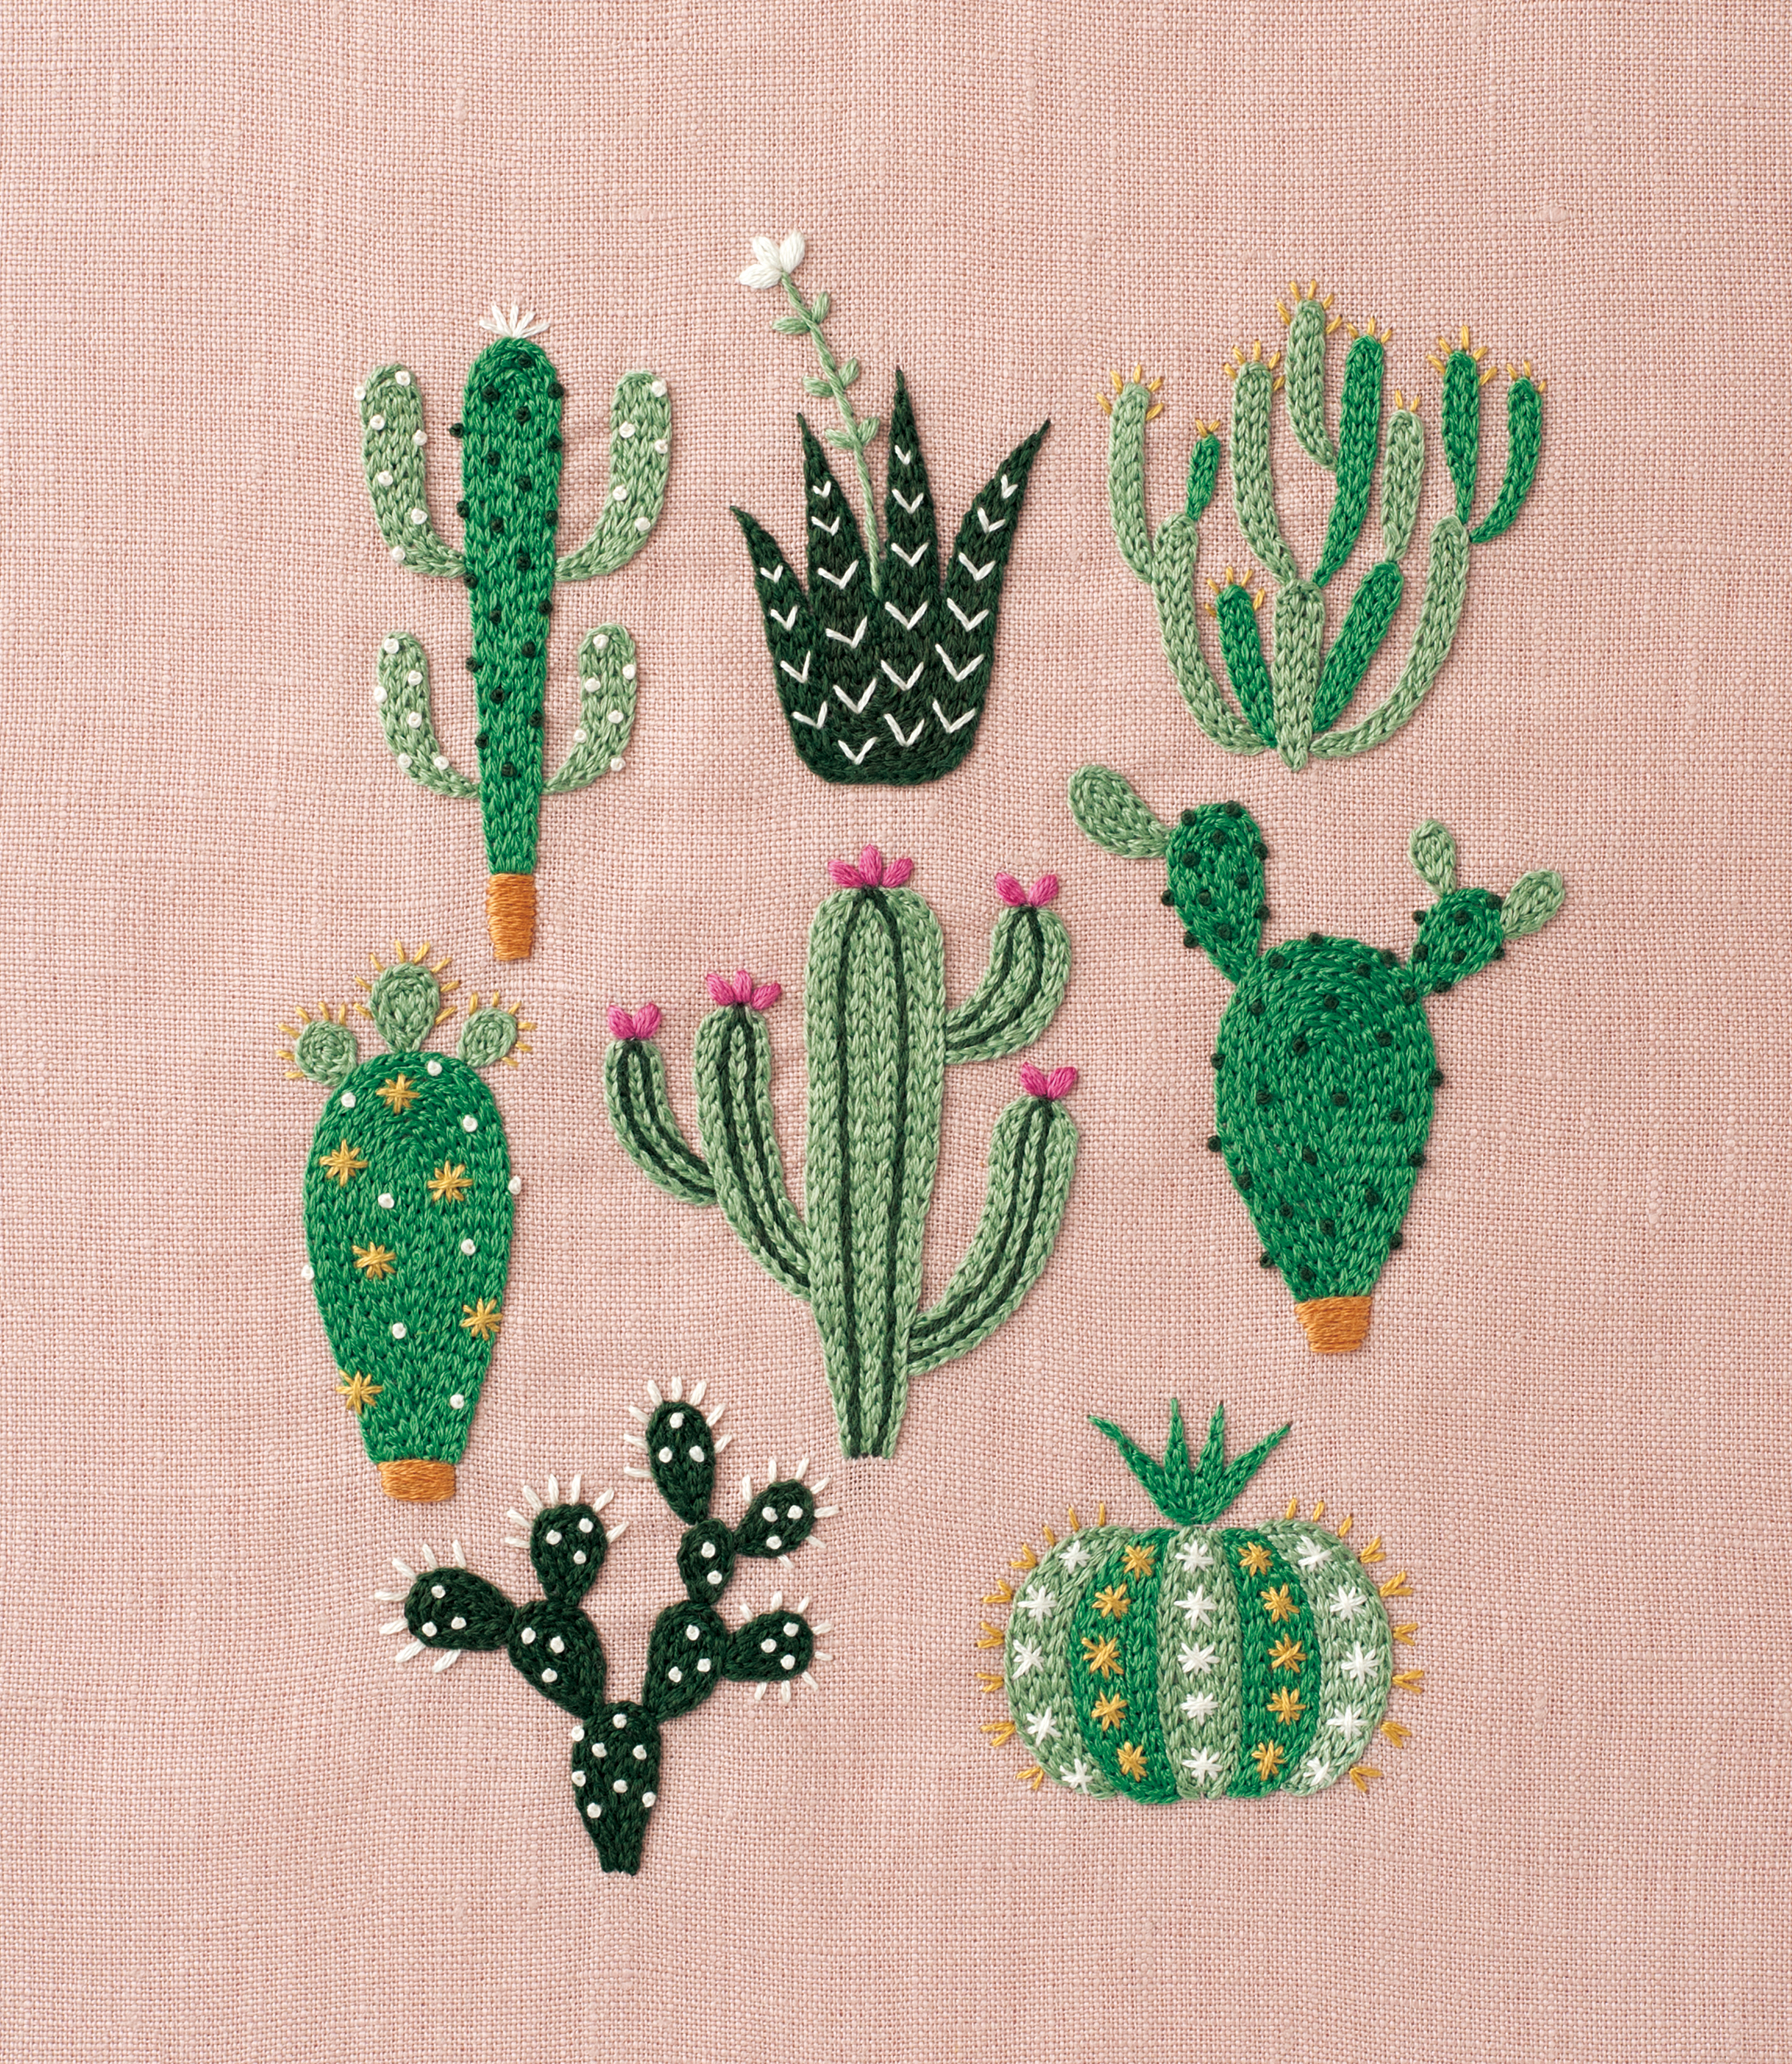 Paper Embroidery Cards Free Patterns Diy Floral Cactus Embroidery Projects From A Year Of Embroidery